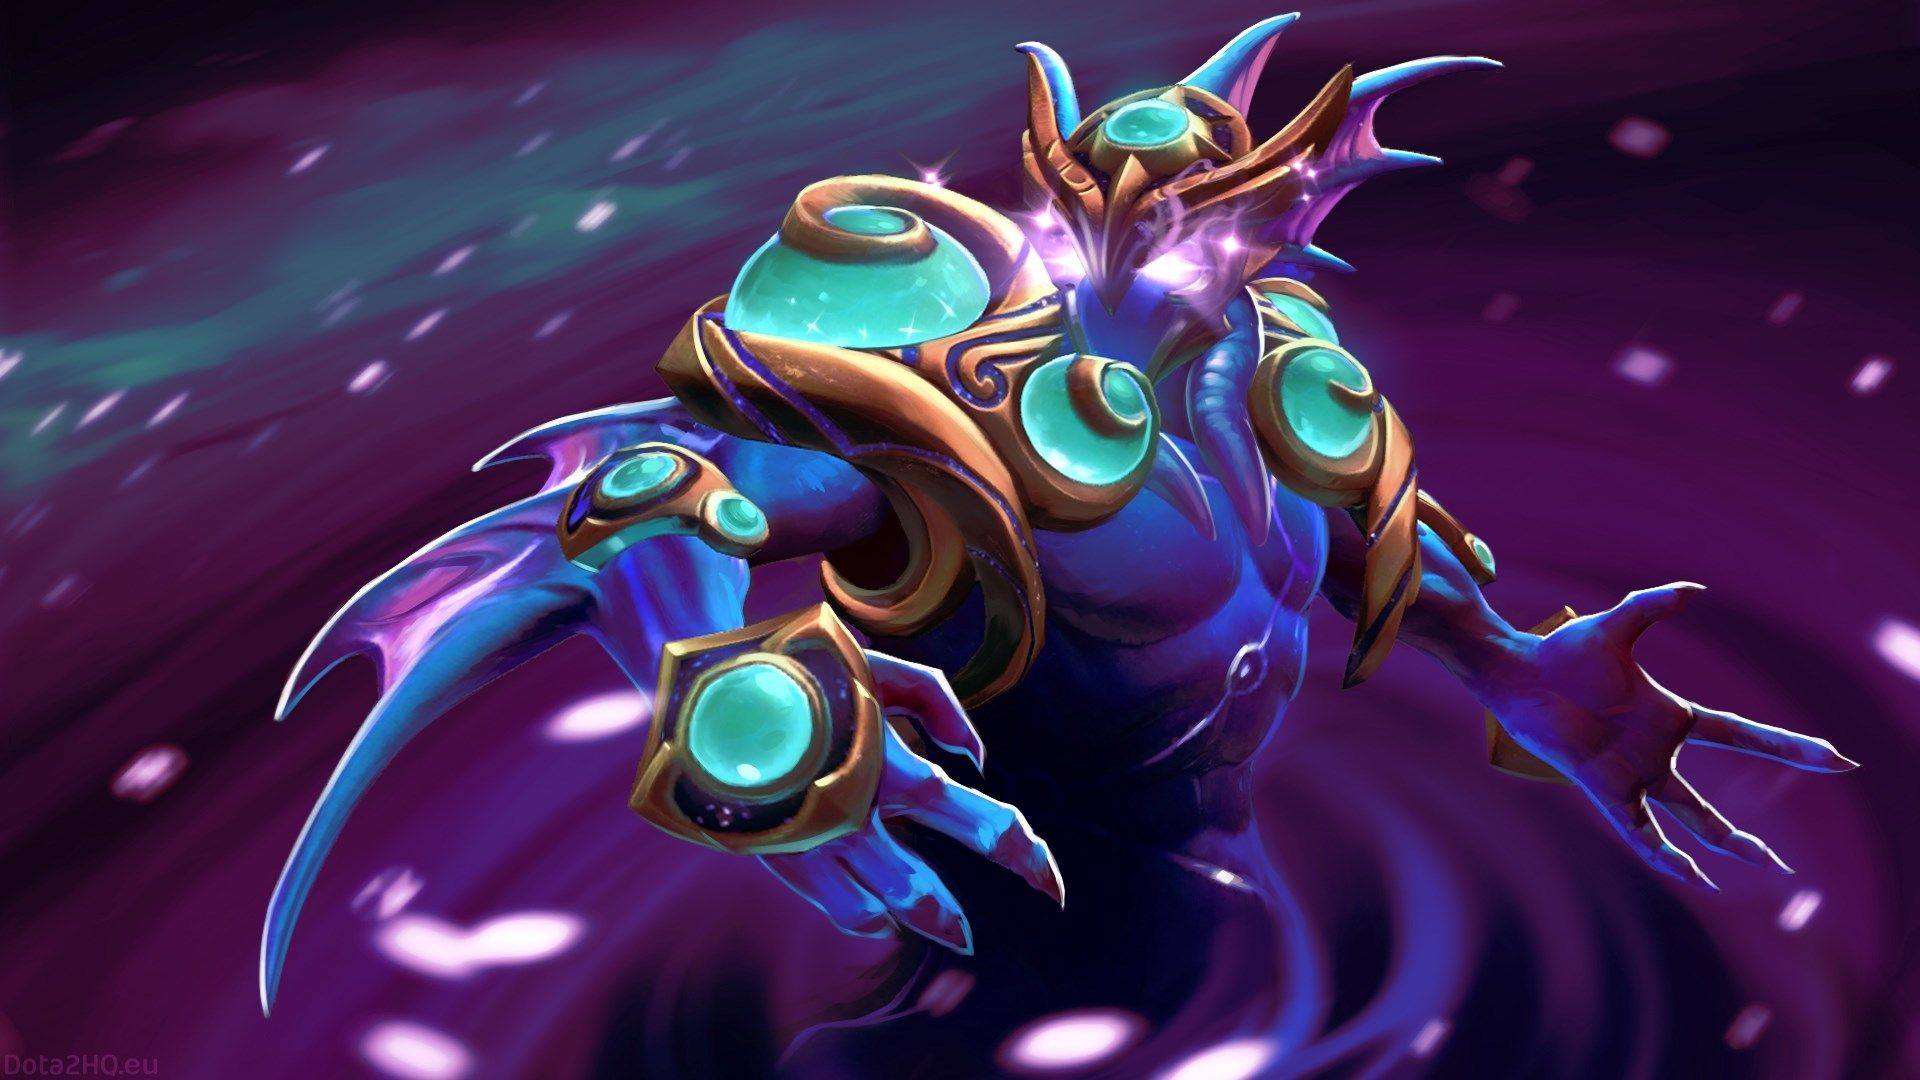 X Enigma Dota  Wallpaper Hd Dota  Wallpapers Hd Screens Artworks